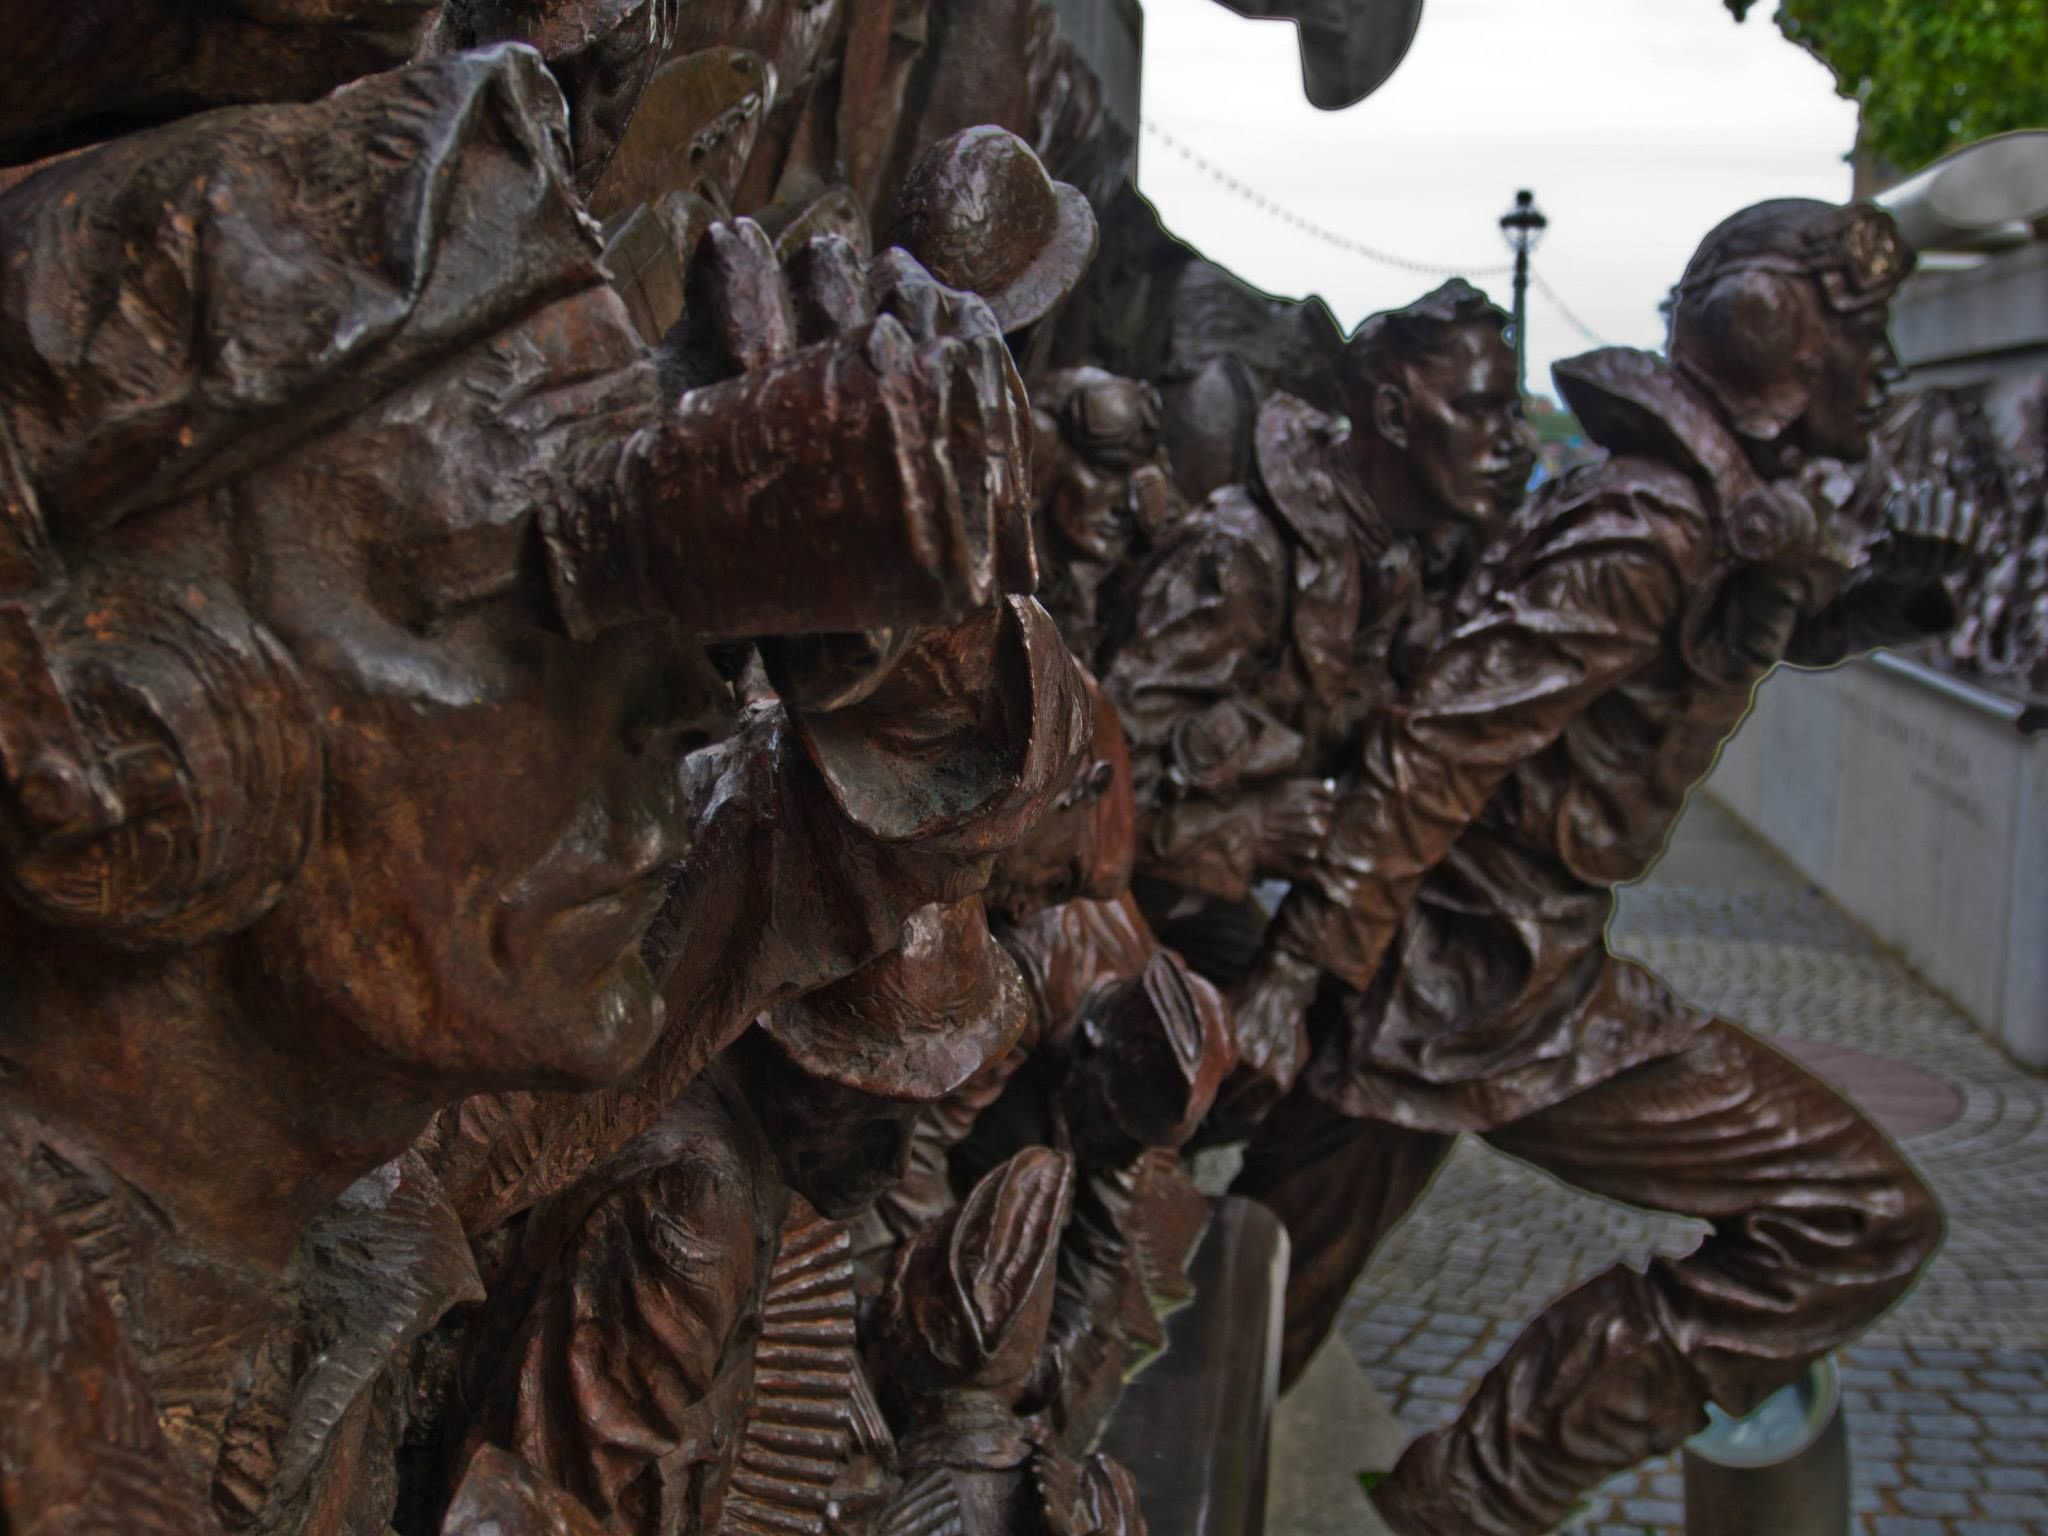 Bronze statue coming to life by darron.sandell